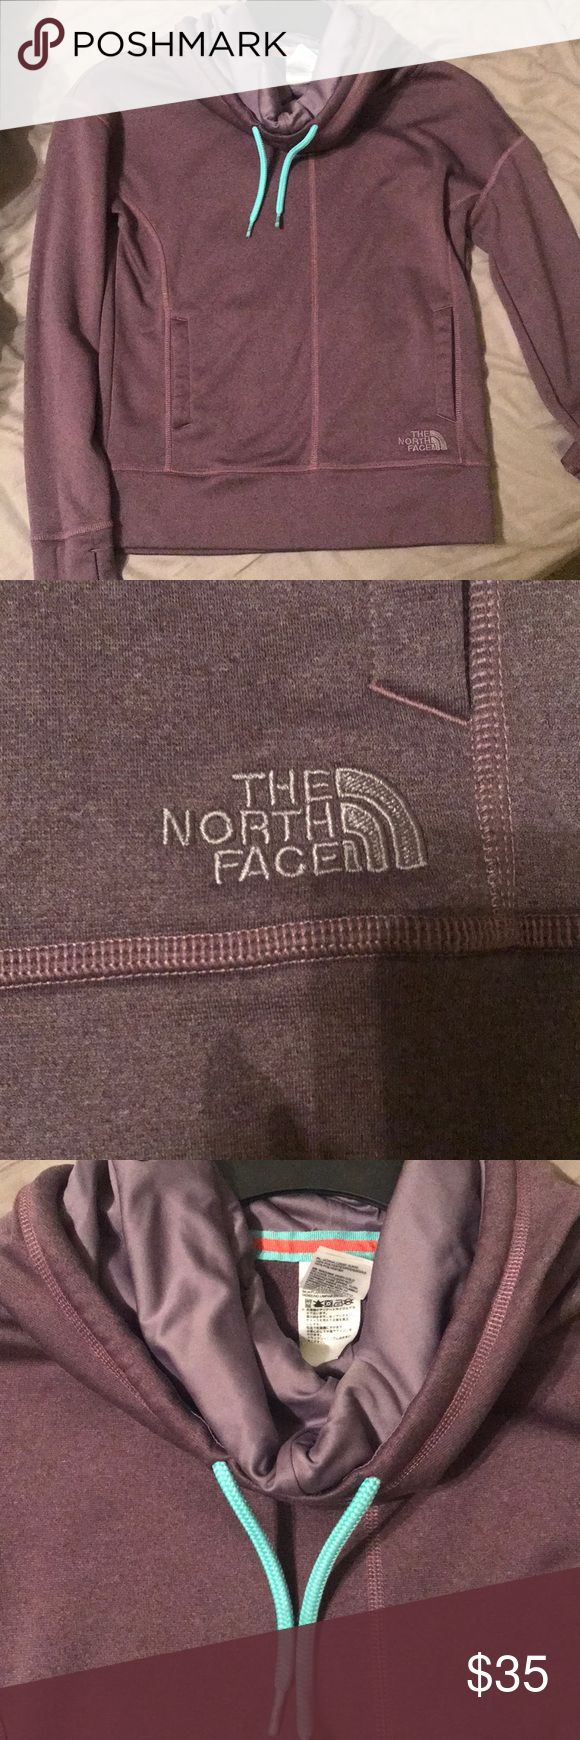 Purple north face sweatshirt Purple sweatshirt with teal jaw strings. Sort of like a turtle neck, but rolls down. Great condition! North Face Jackets & Coats